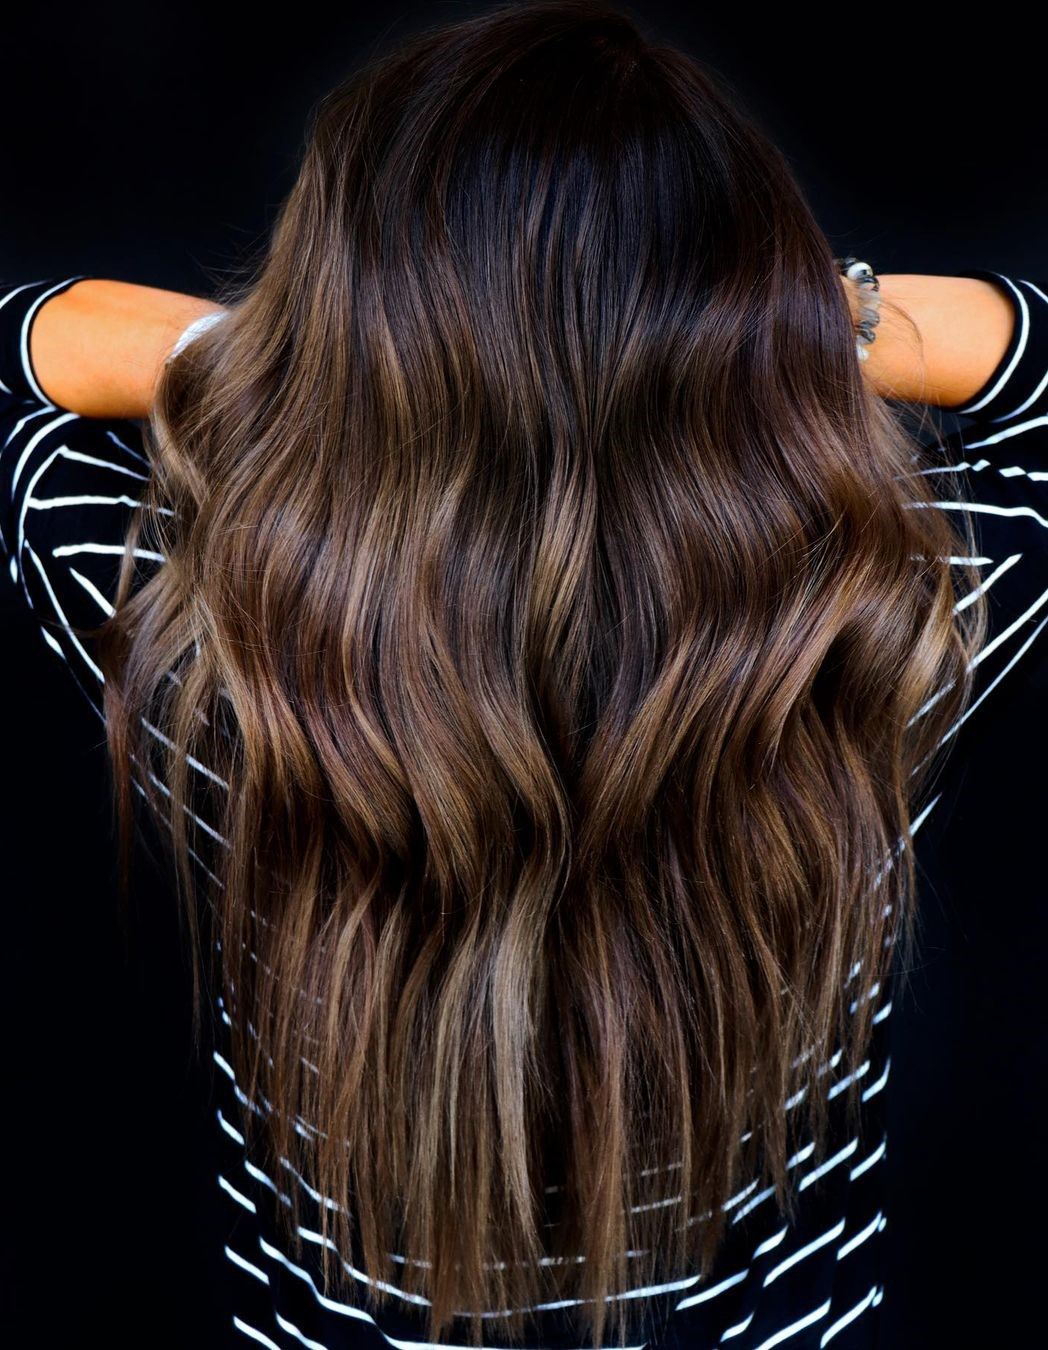 Edgy V-Cut with Waves